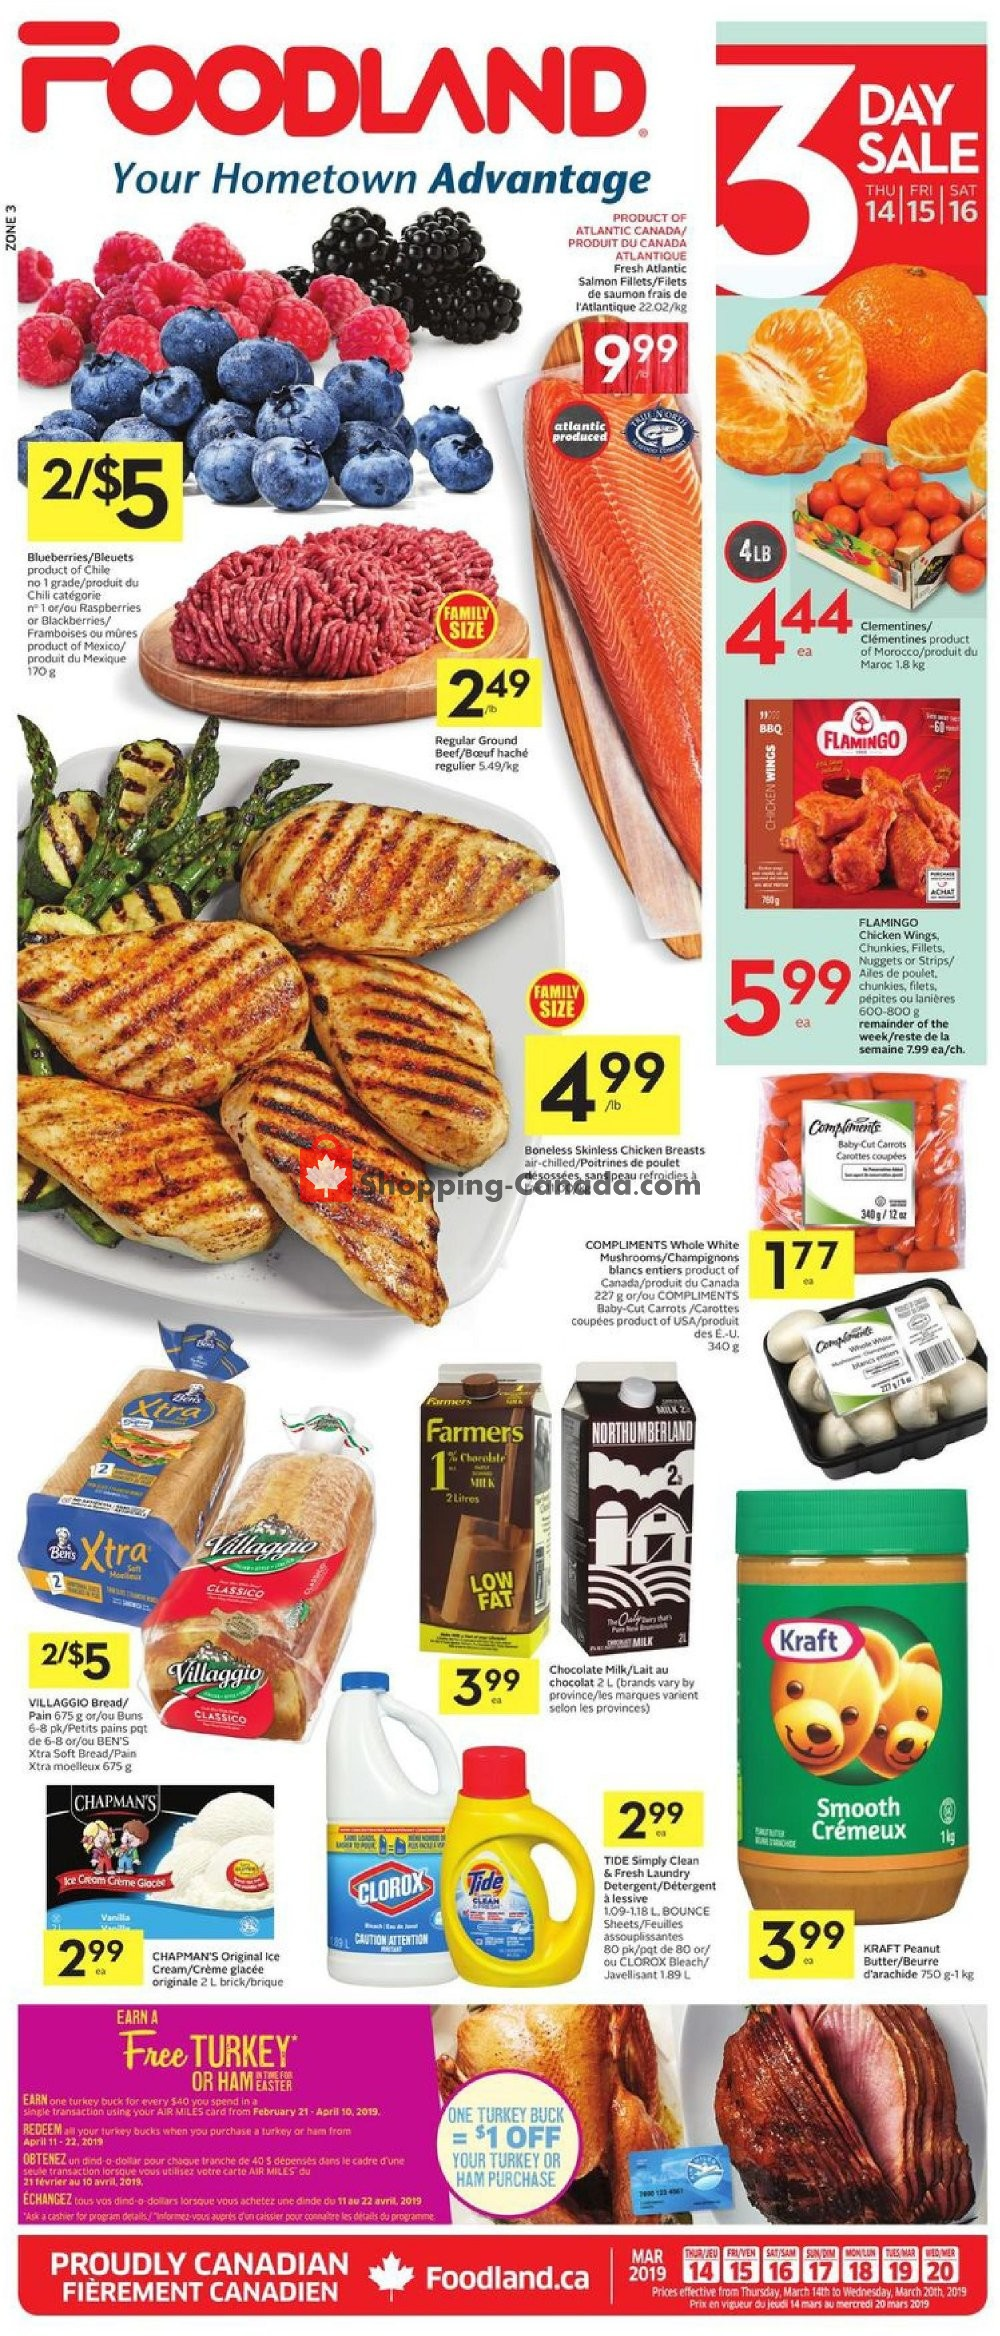 Flyer Foodland Canada - from Thursday March 14, 2019 to Wednesday March 20, 2019